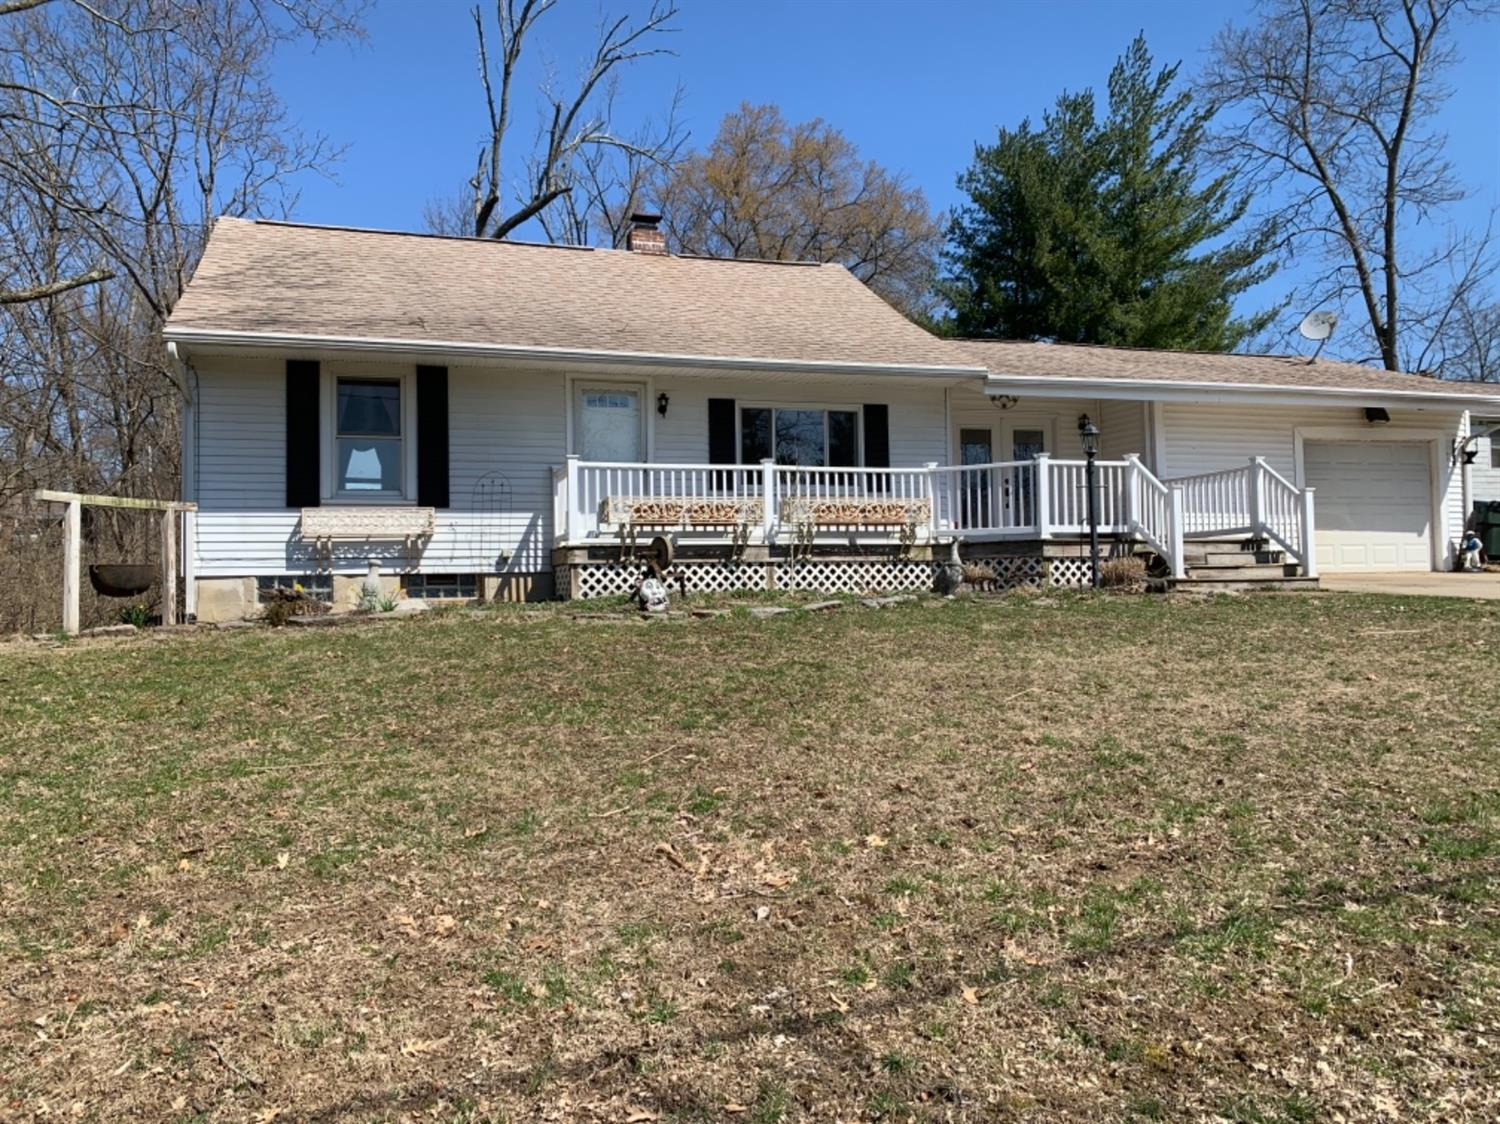 Photo 1 for 3740 Stahlheber Rd Hanover Twp., OH 45013